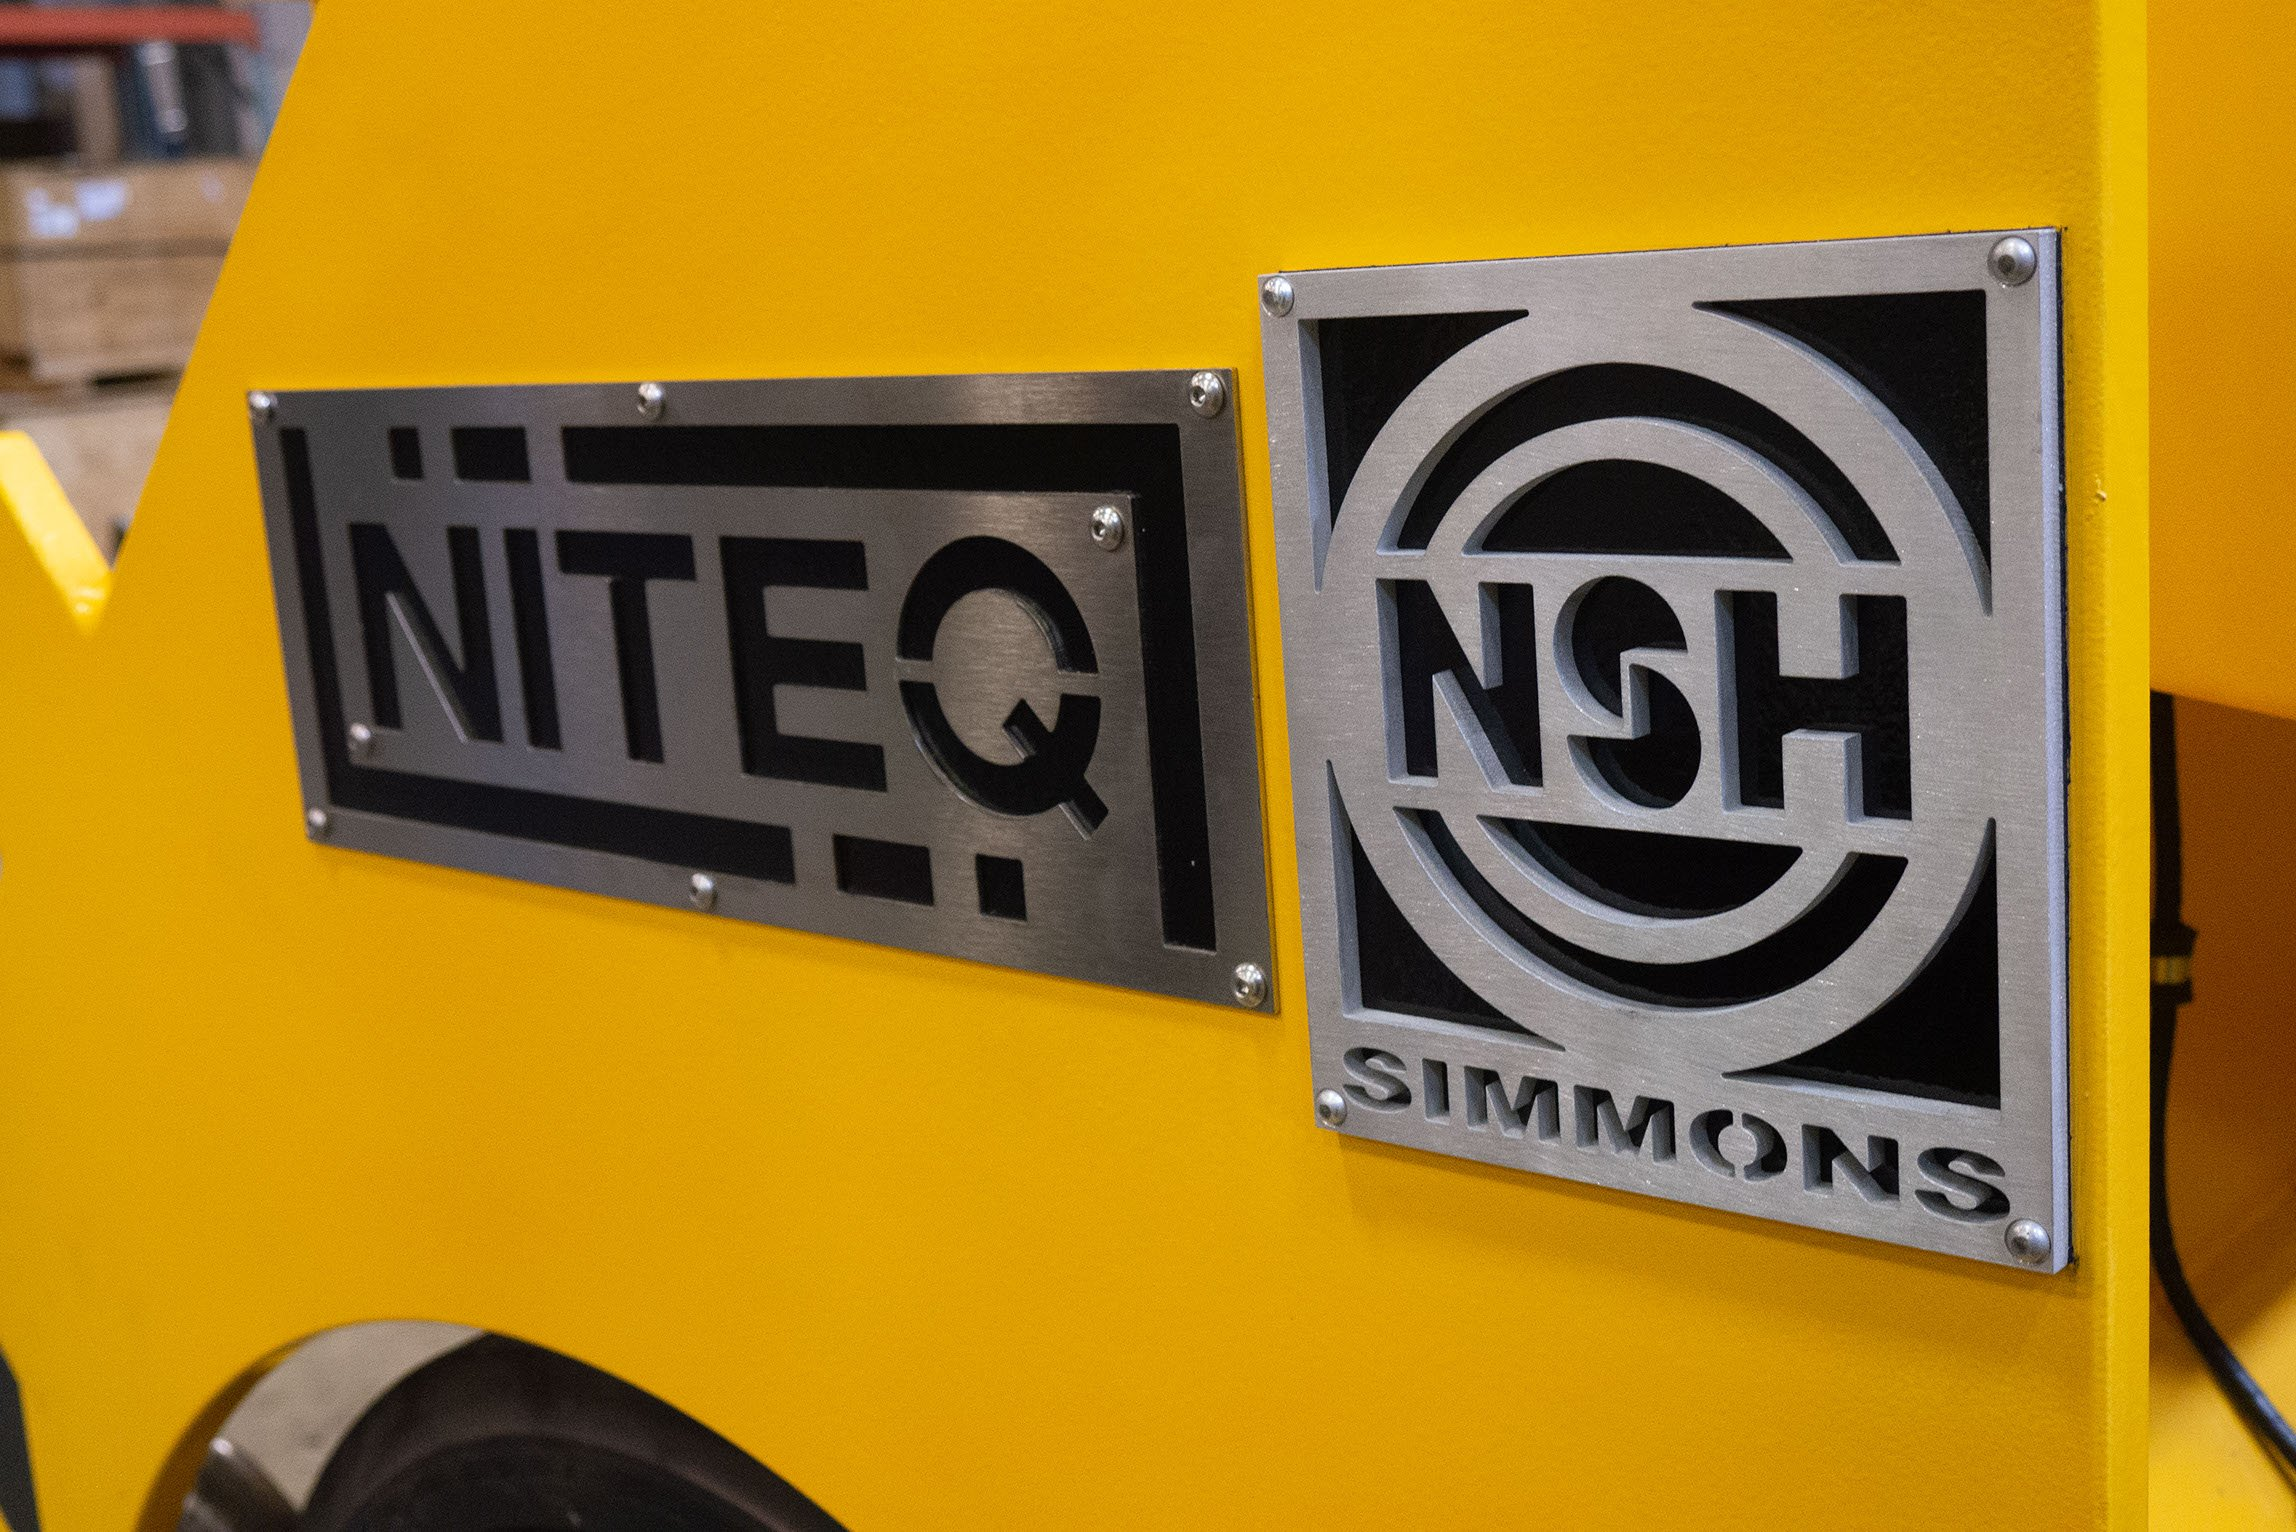 Railway shunting vehicle by Niteq